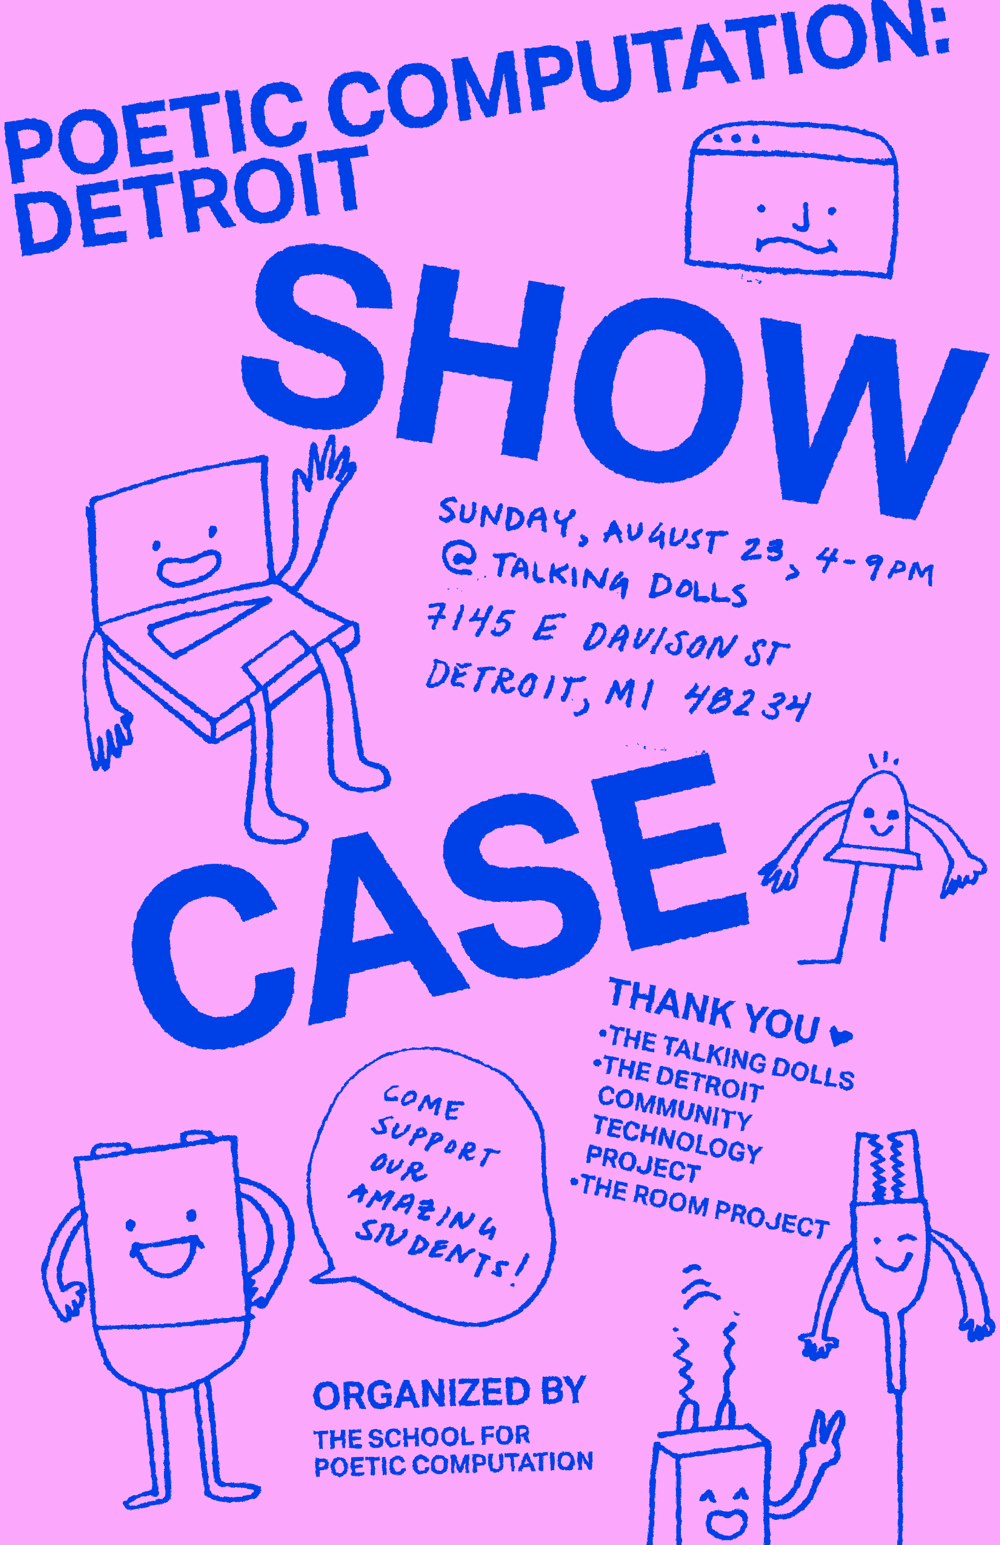 A flyer colored pink and blue with handrawn illustrations of a laptop, terminal window, led, battery, alligator clips and wifi box that has all the details of the showcase written on it.